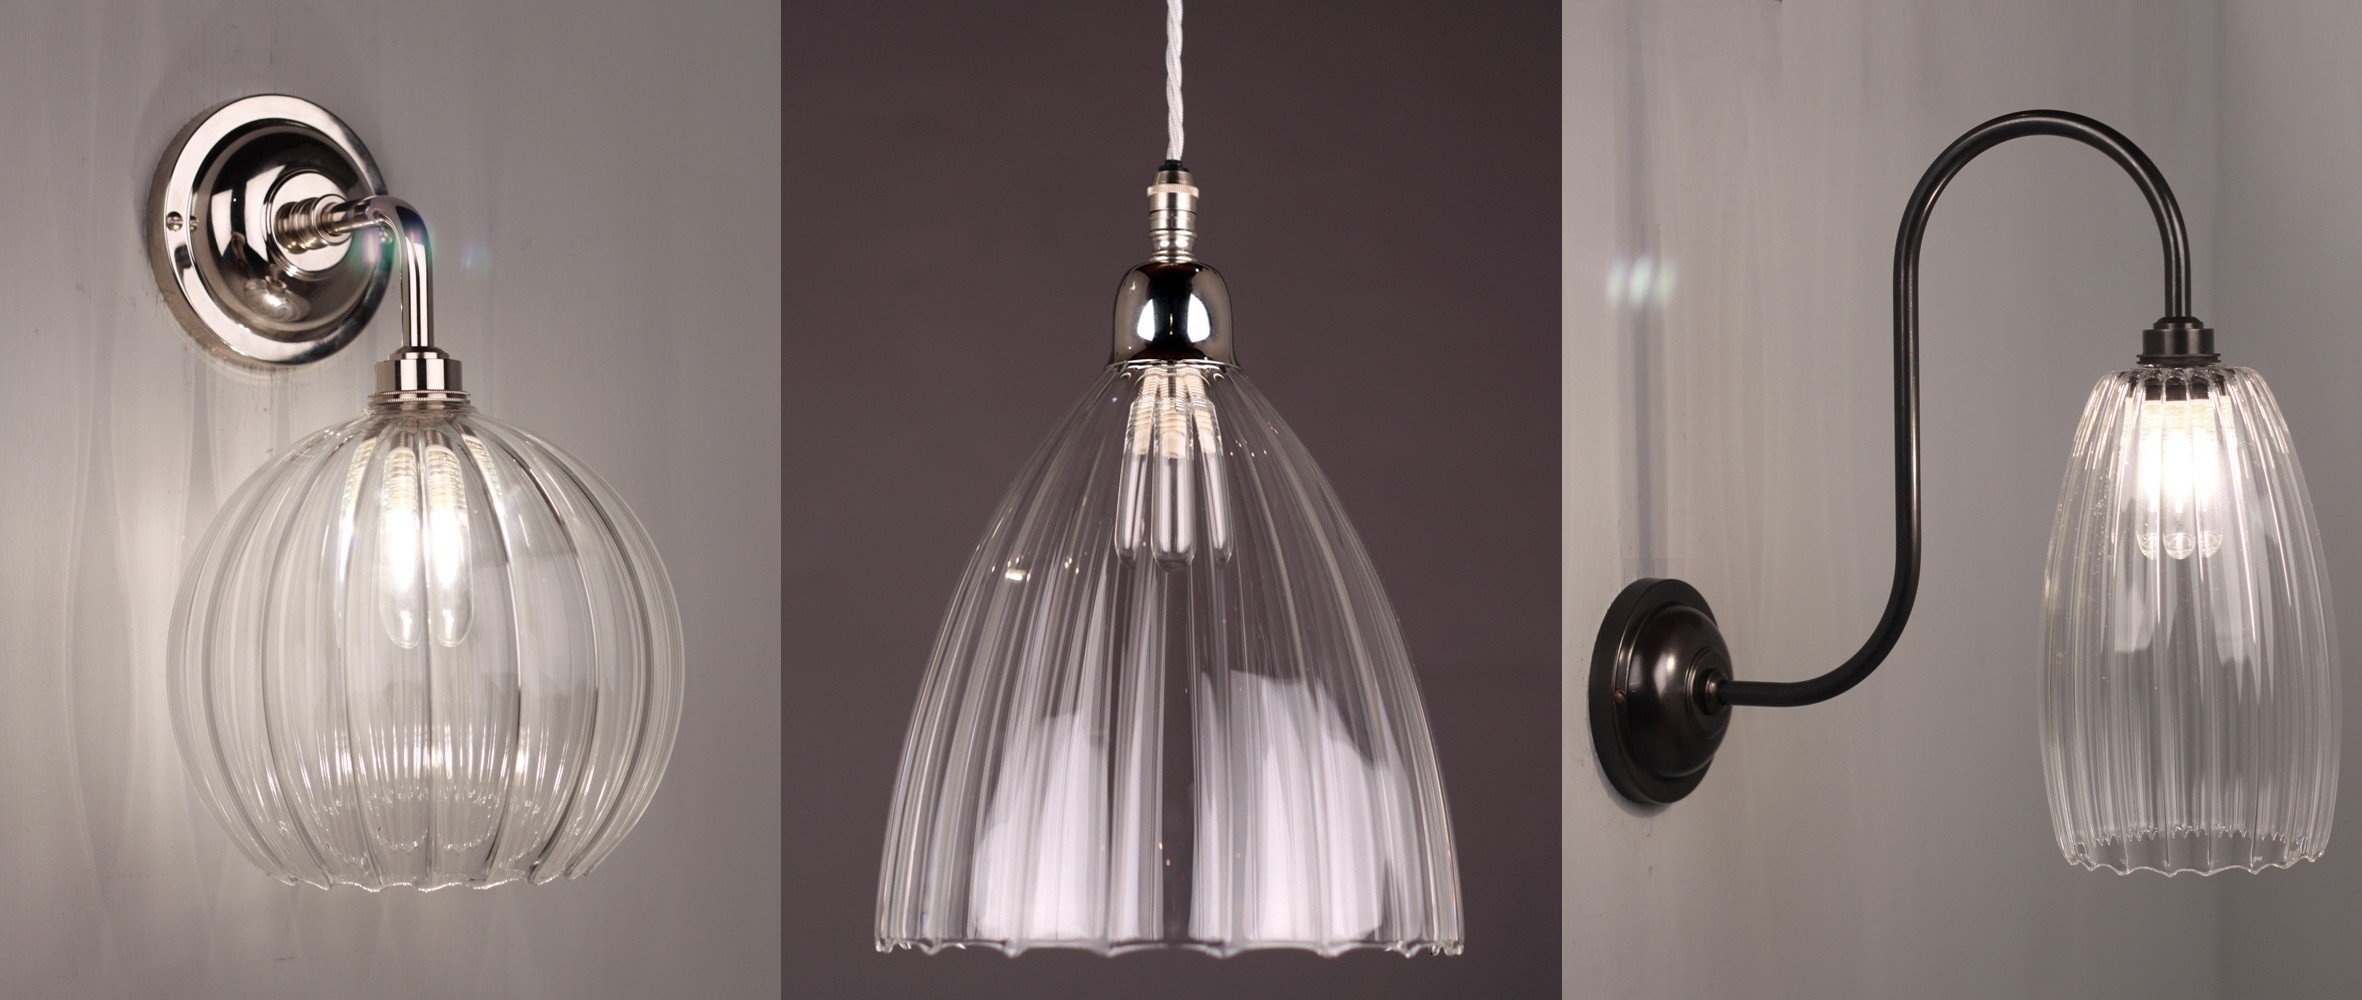 Bathroom Wall Light Fixtures Uk bathroom pendant lighting uk – laptoptablets